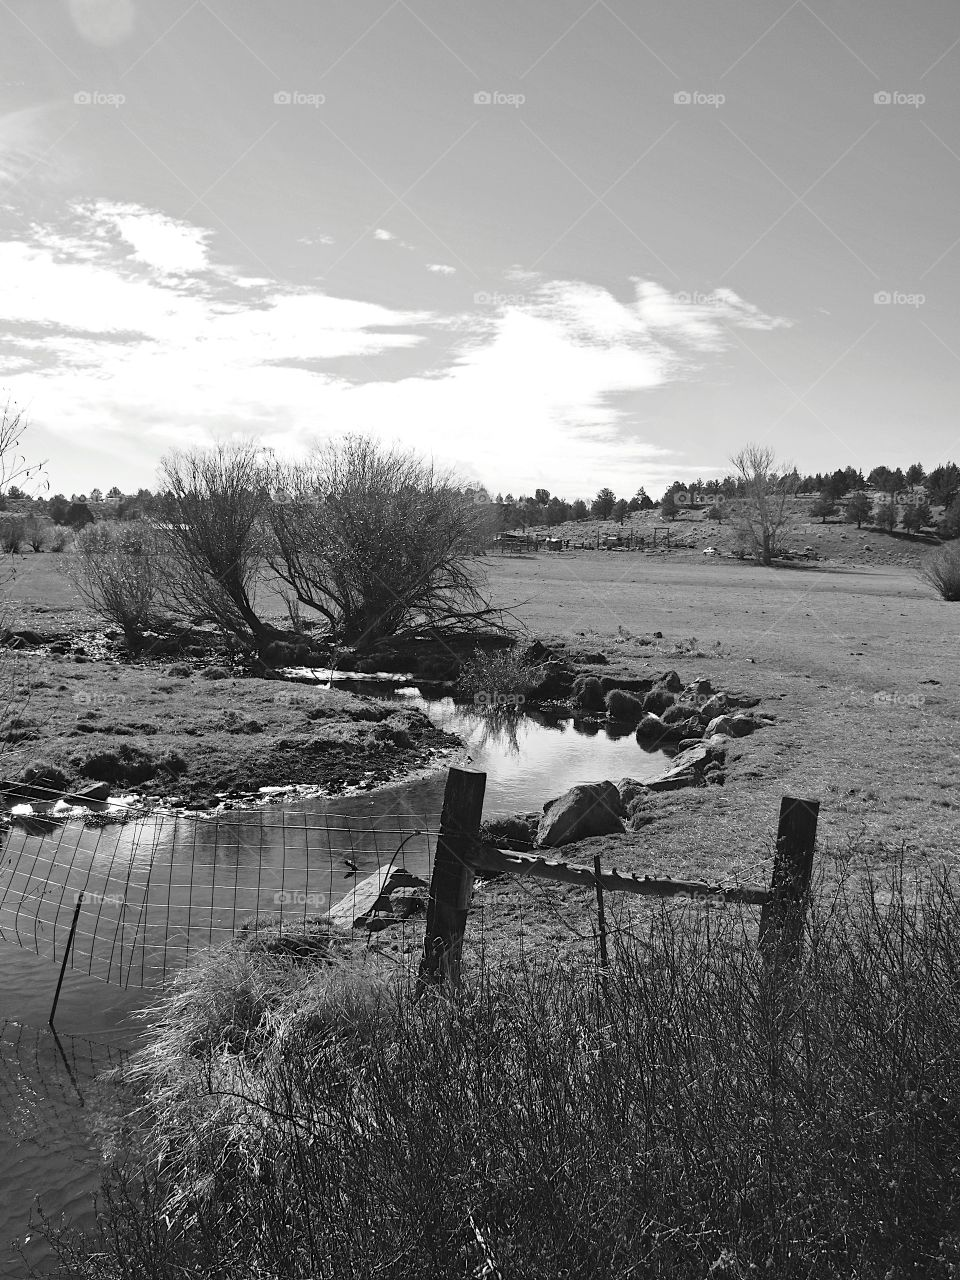 A creek running through a ranch field on a clear day in Southern Oregon.